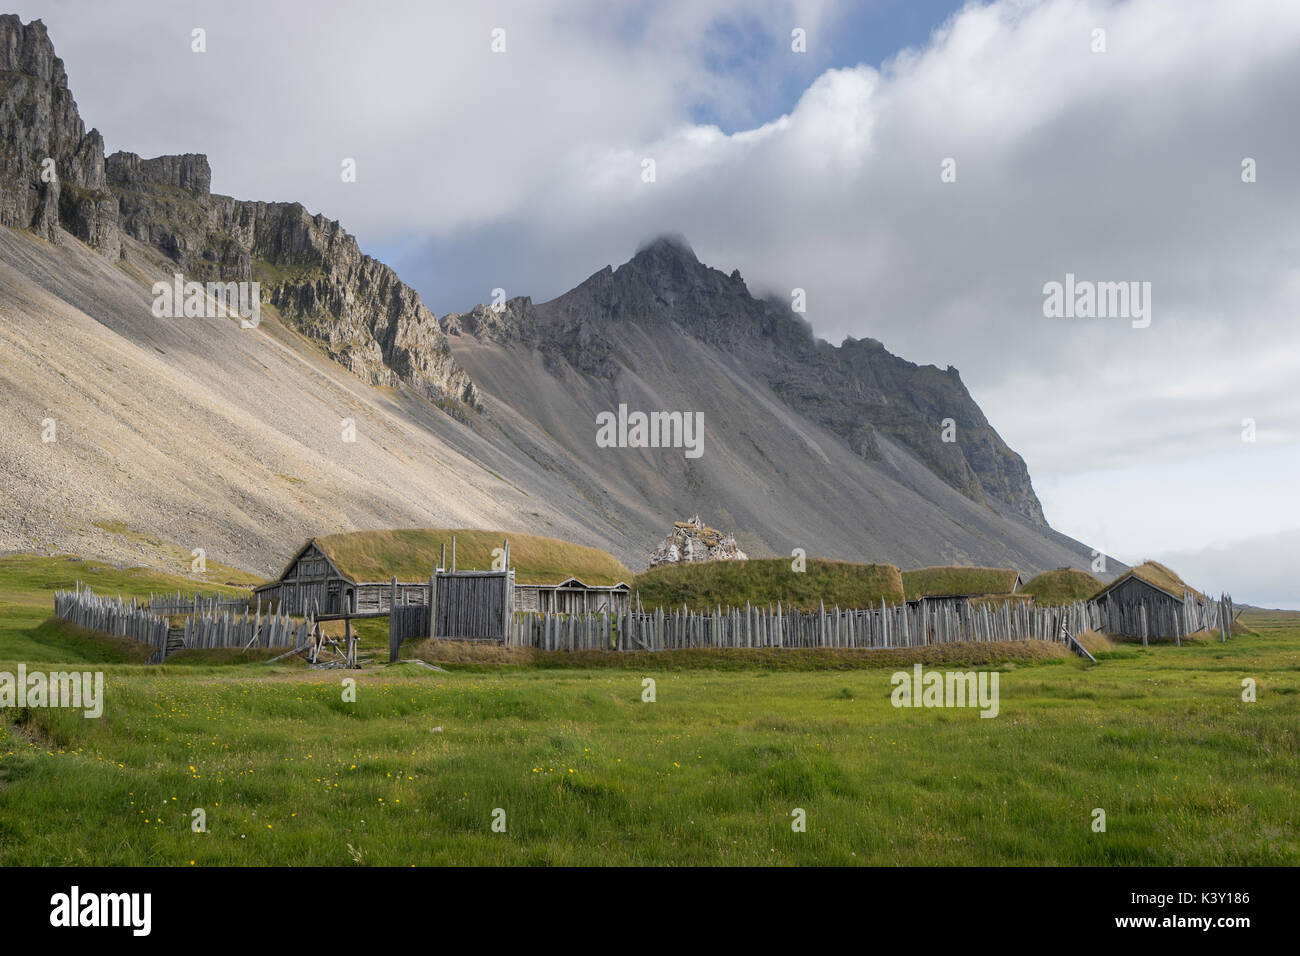 This great costume drama ended with the viking funeral that was idealized in popular culture. Viking Village Film Vor Berg Vestrahorn Island Set Aufgegeben Stockfotografie Alamy